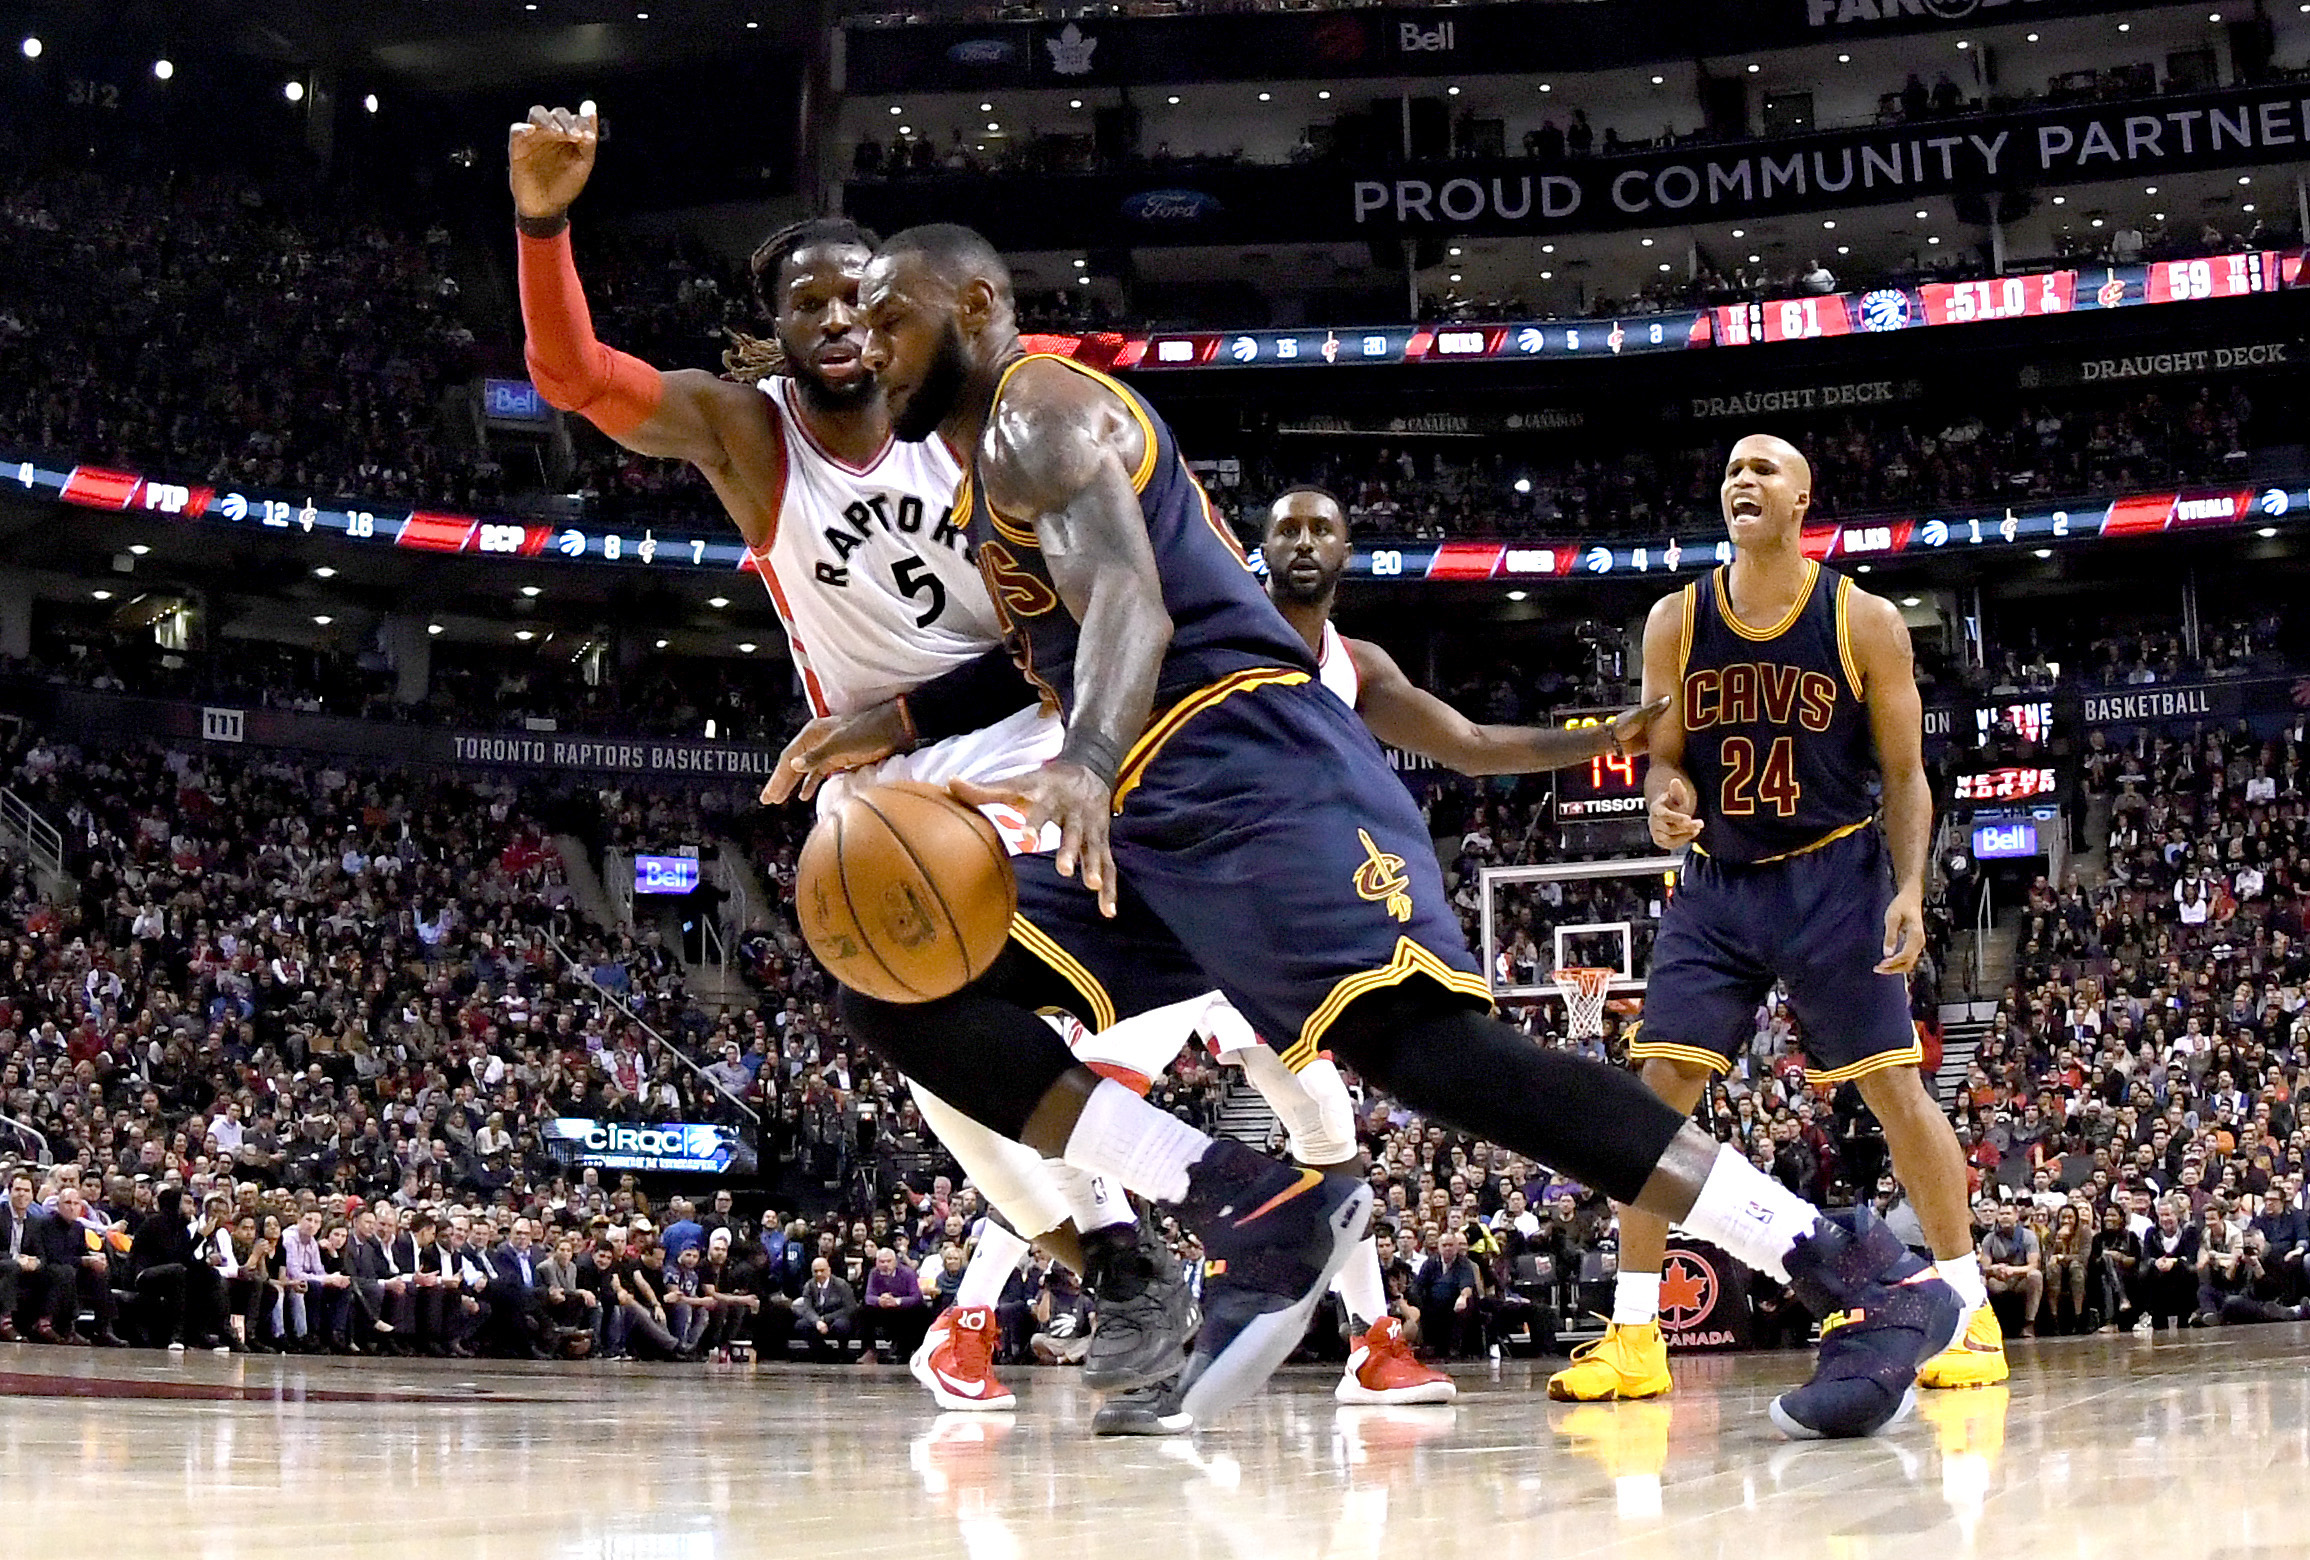 9728183-nba-cleveland-cavaliers-at-toronto-raptors